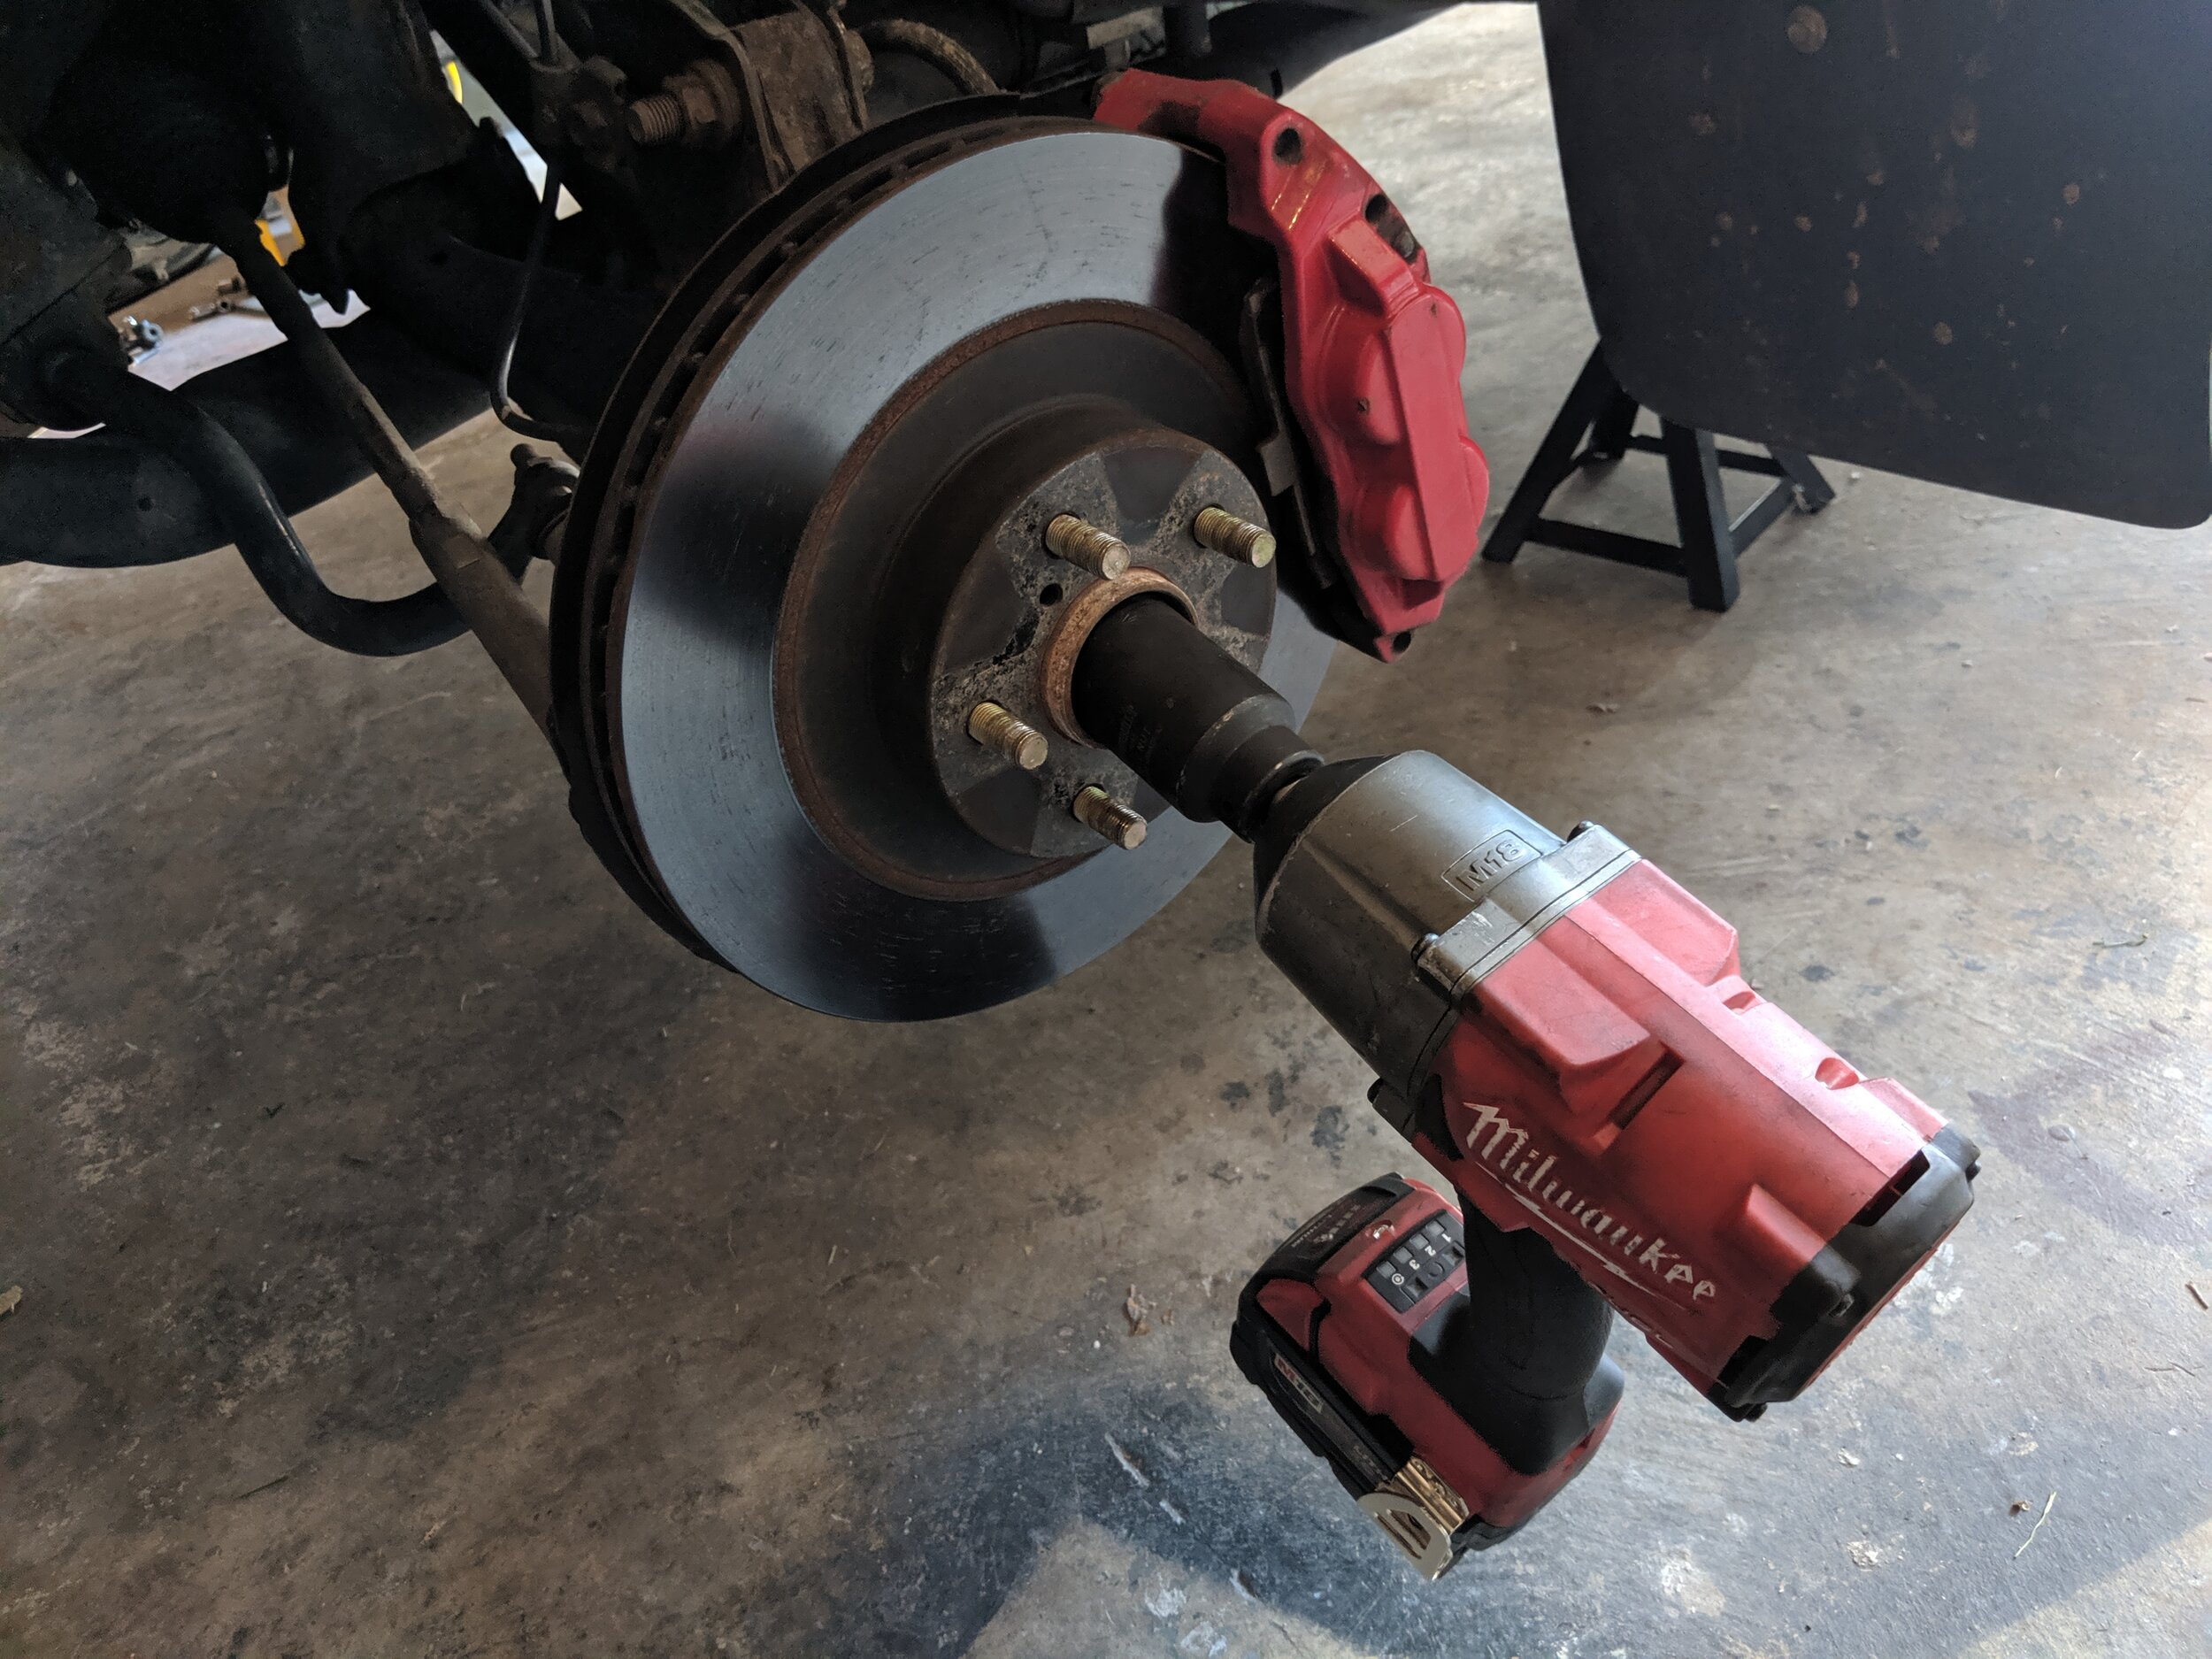 Off with the axle nuts. This is just a precaution when you are moving the spindle around. If you move it too far with the axle nut bolted on, you can accidentally pull the axle apart. Making your fun install a less fun time.